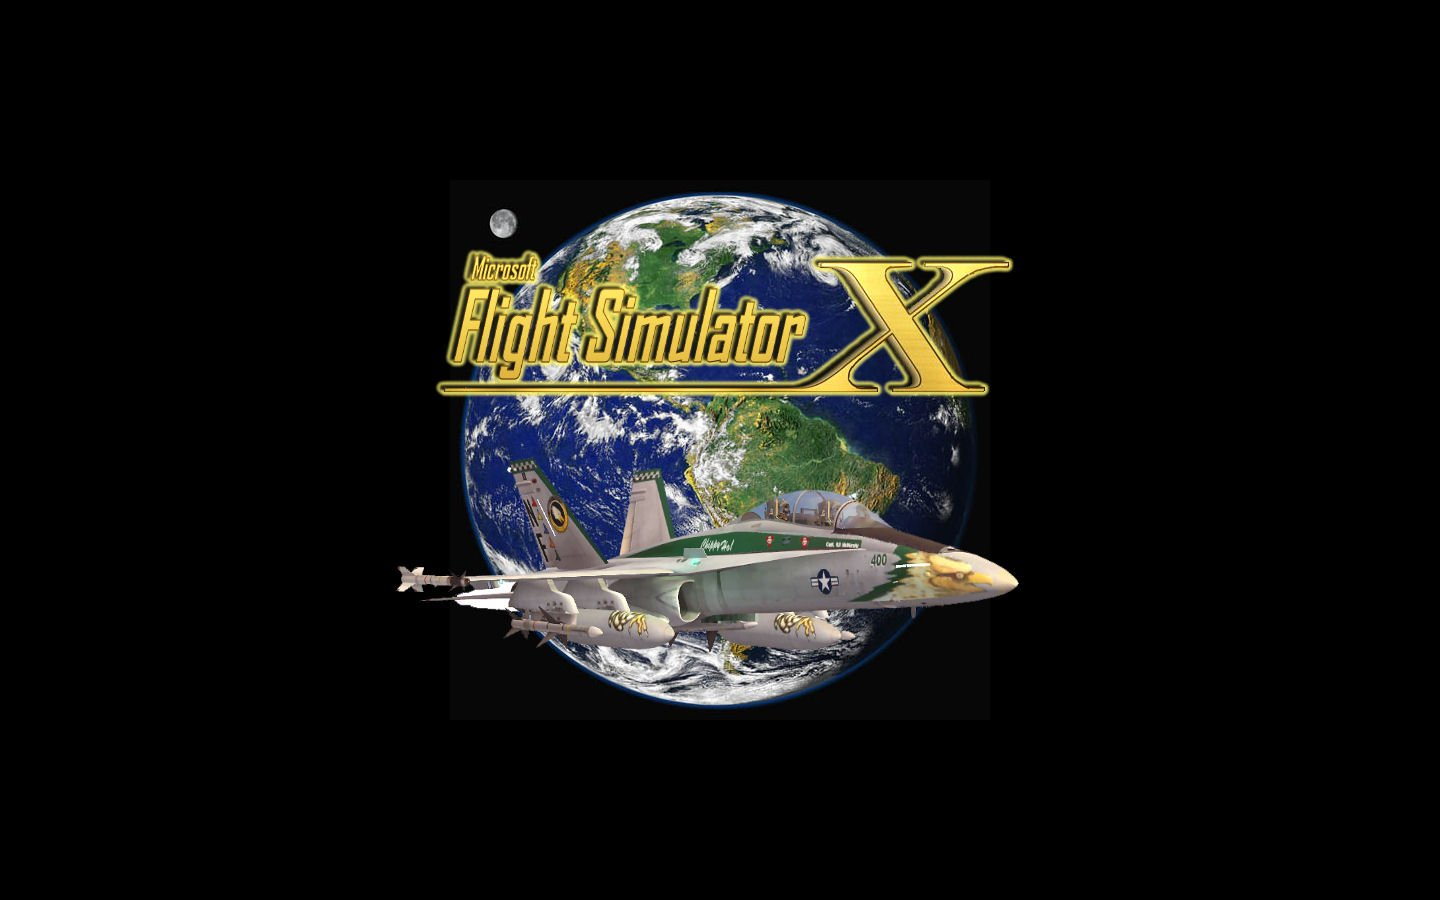 Desk top wallpaper background wallpaper Flight Simulator X 1440x900